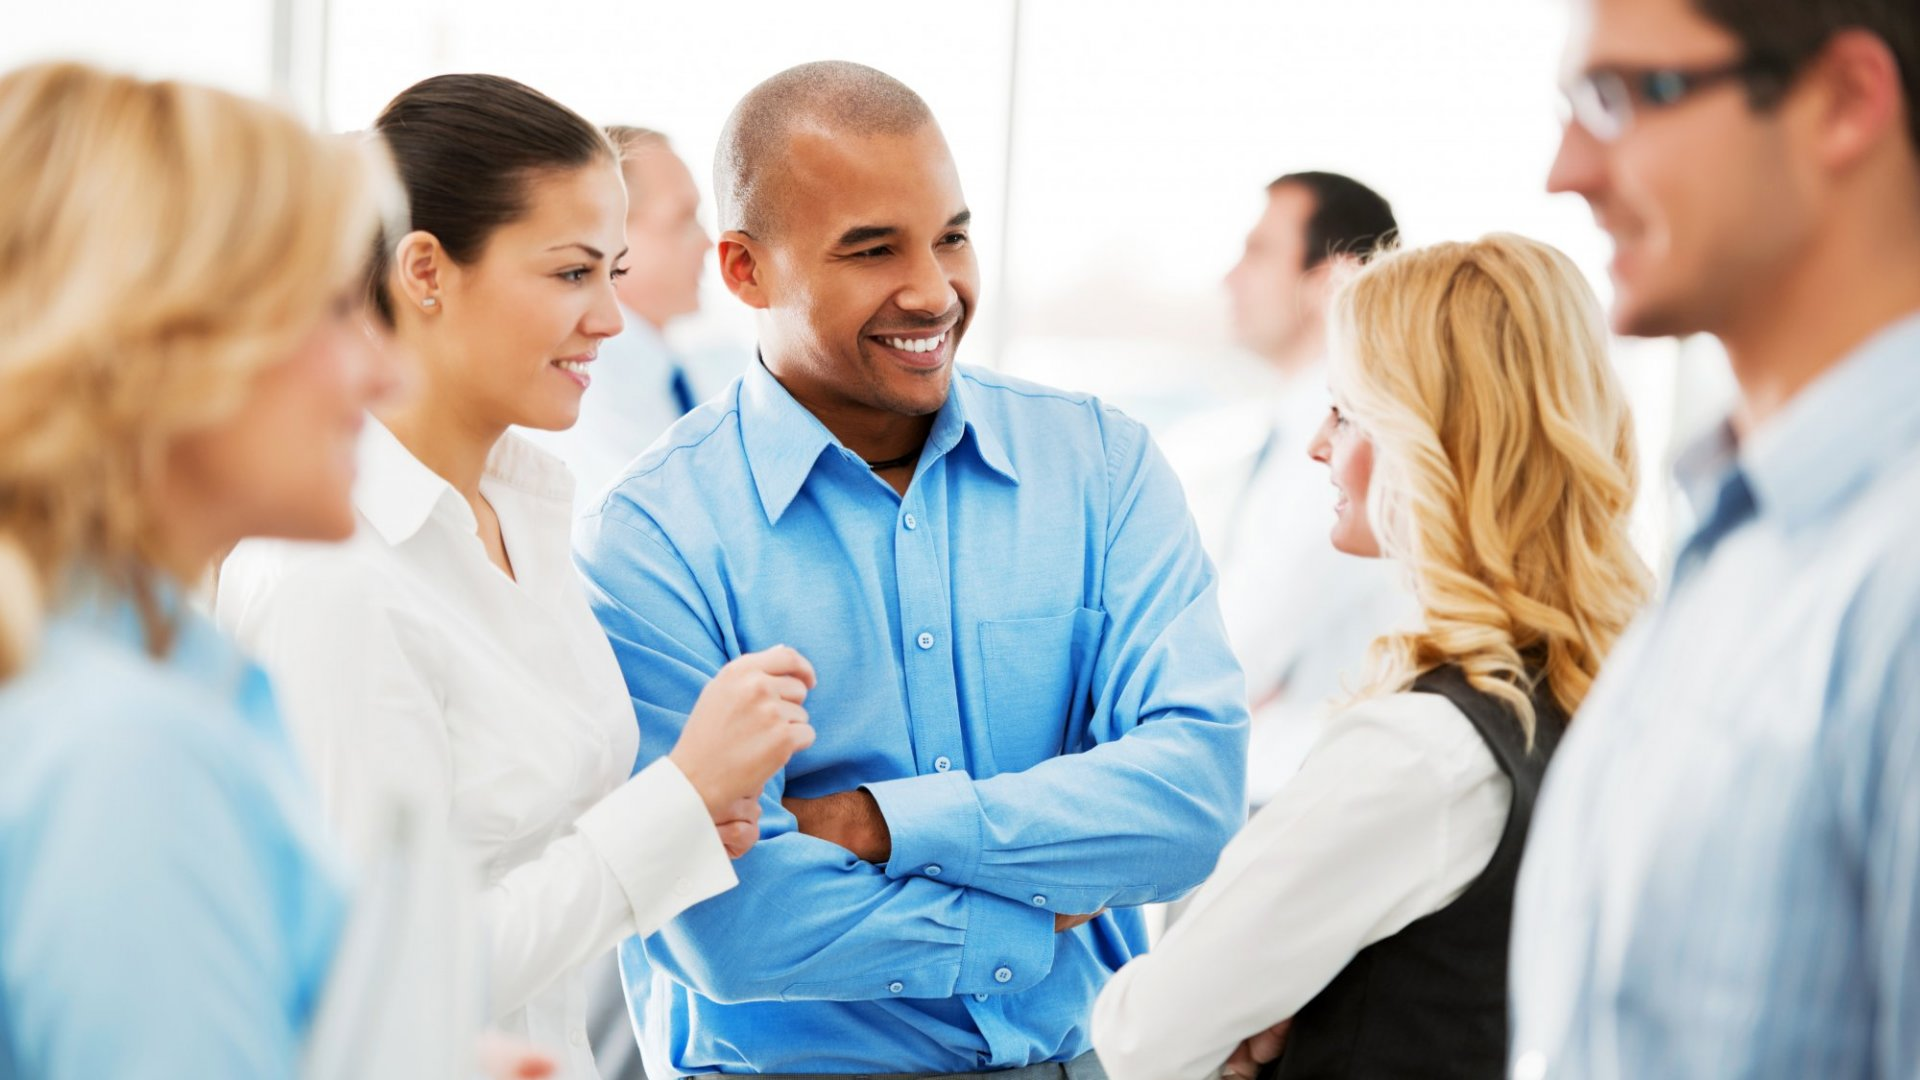 5 Genius Networking Tricks from the Best Networker I Know